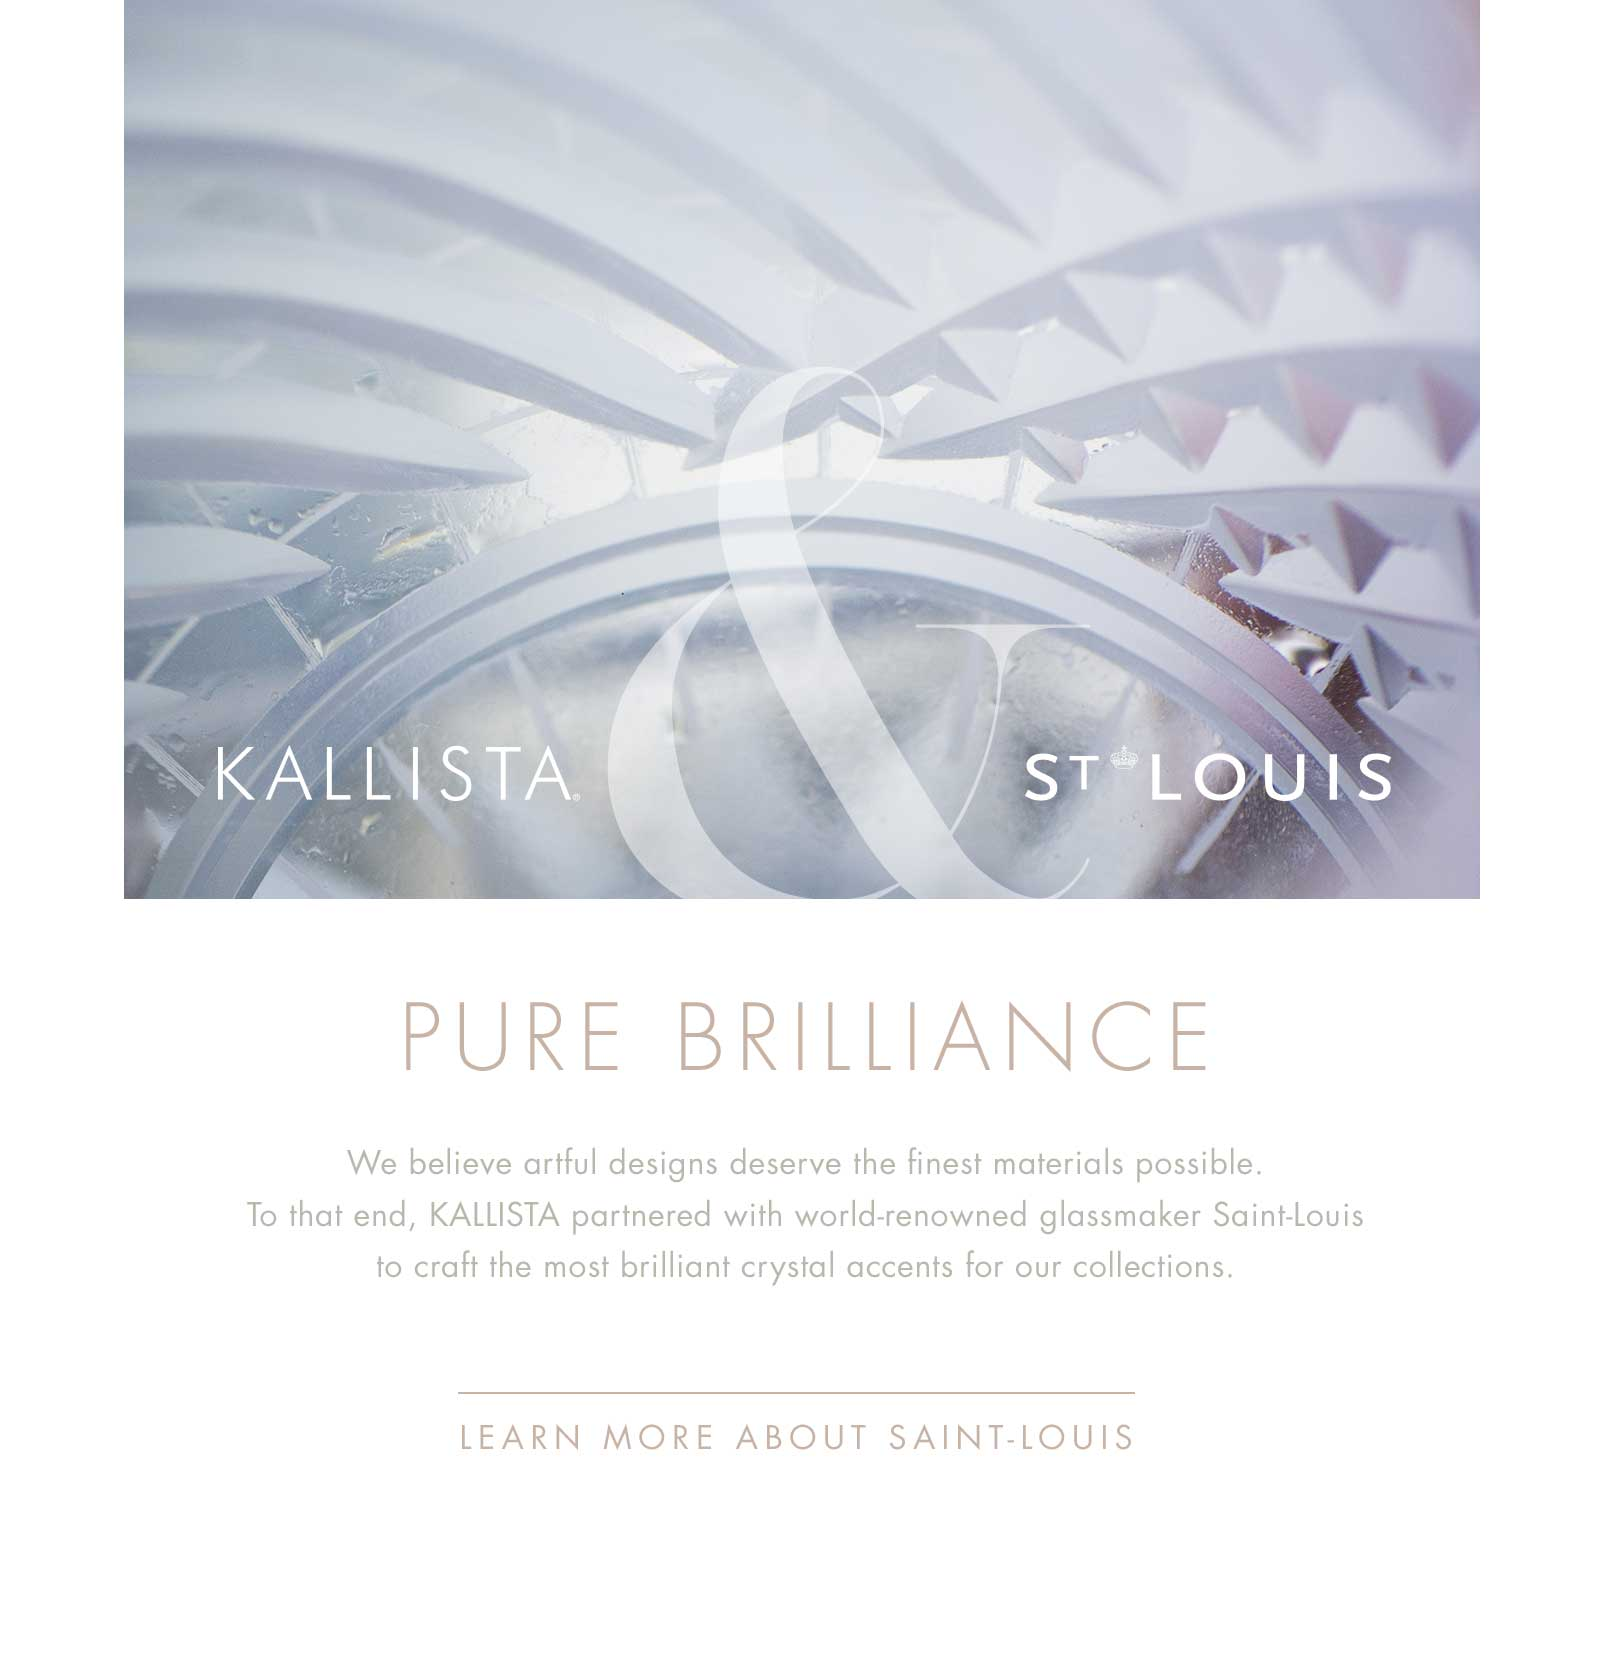 KALLISTA & St. Louis | PURE BRILLIANCE | We believe artful designs deserve the finest materials possible. To that end, KALLISTA partnered with world-renowned glassmaker Saint-Louis to craft the most brilliant crystal accents for our collections. | LEARN MORE ABOUT SAINT-LOUIS